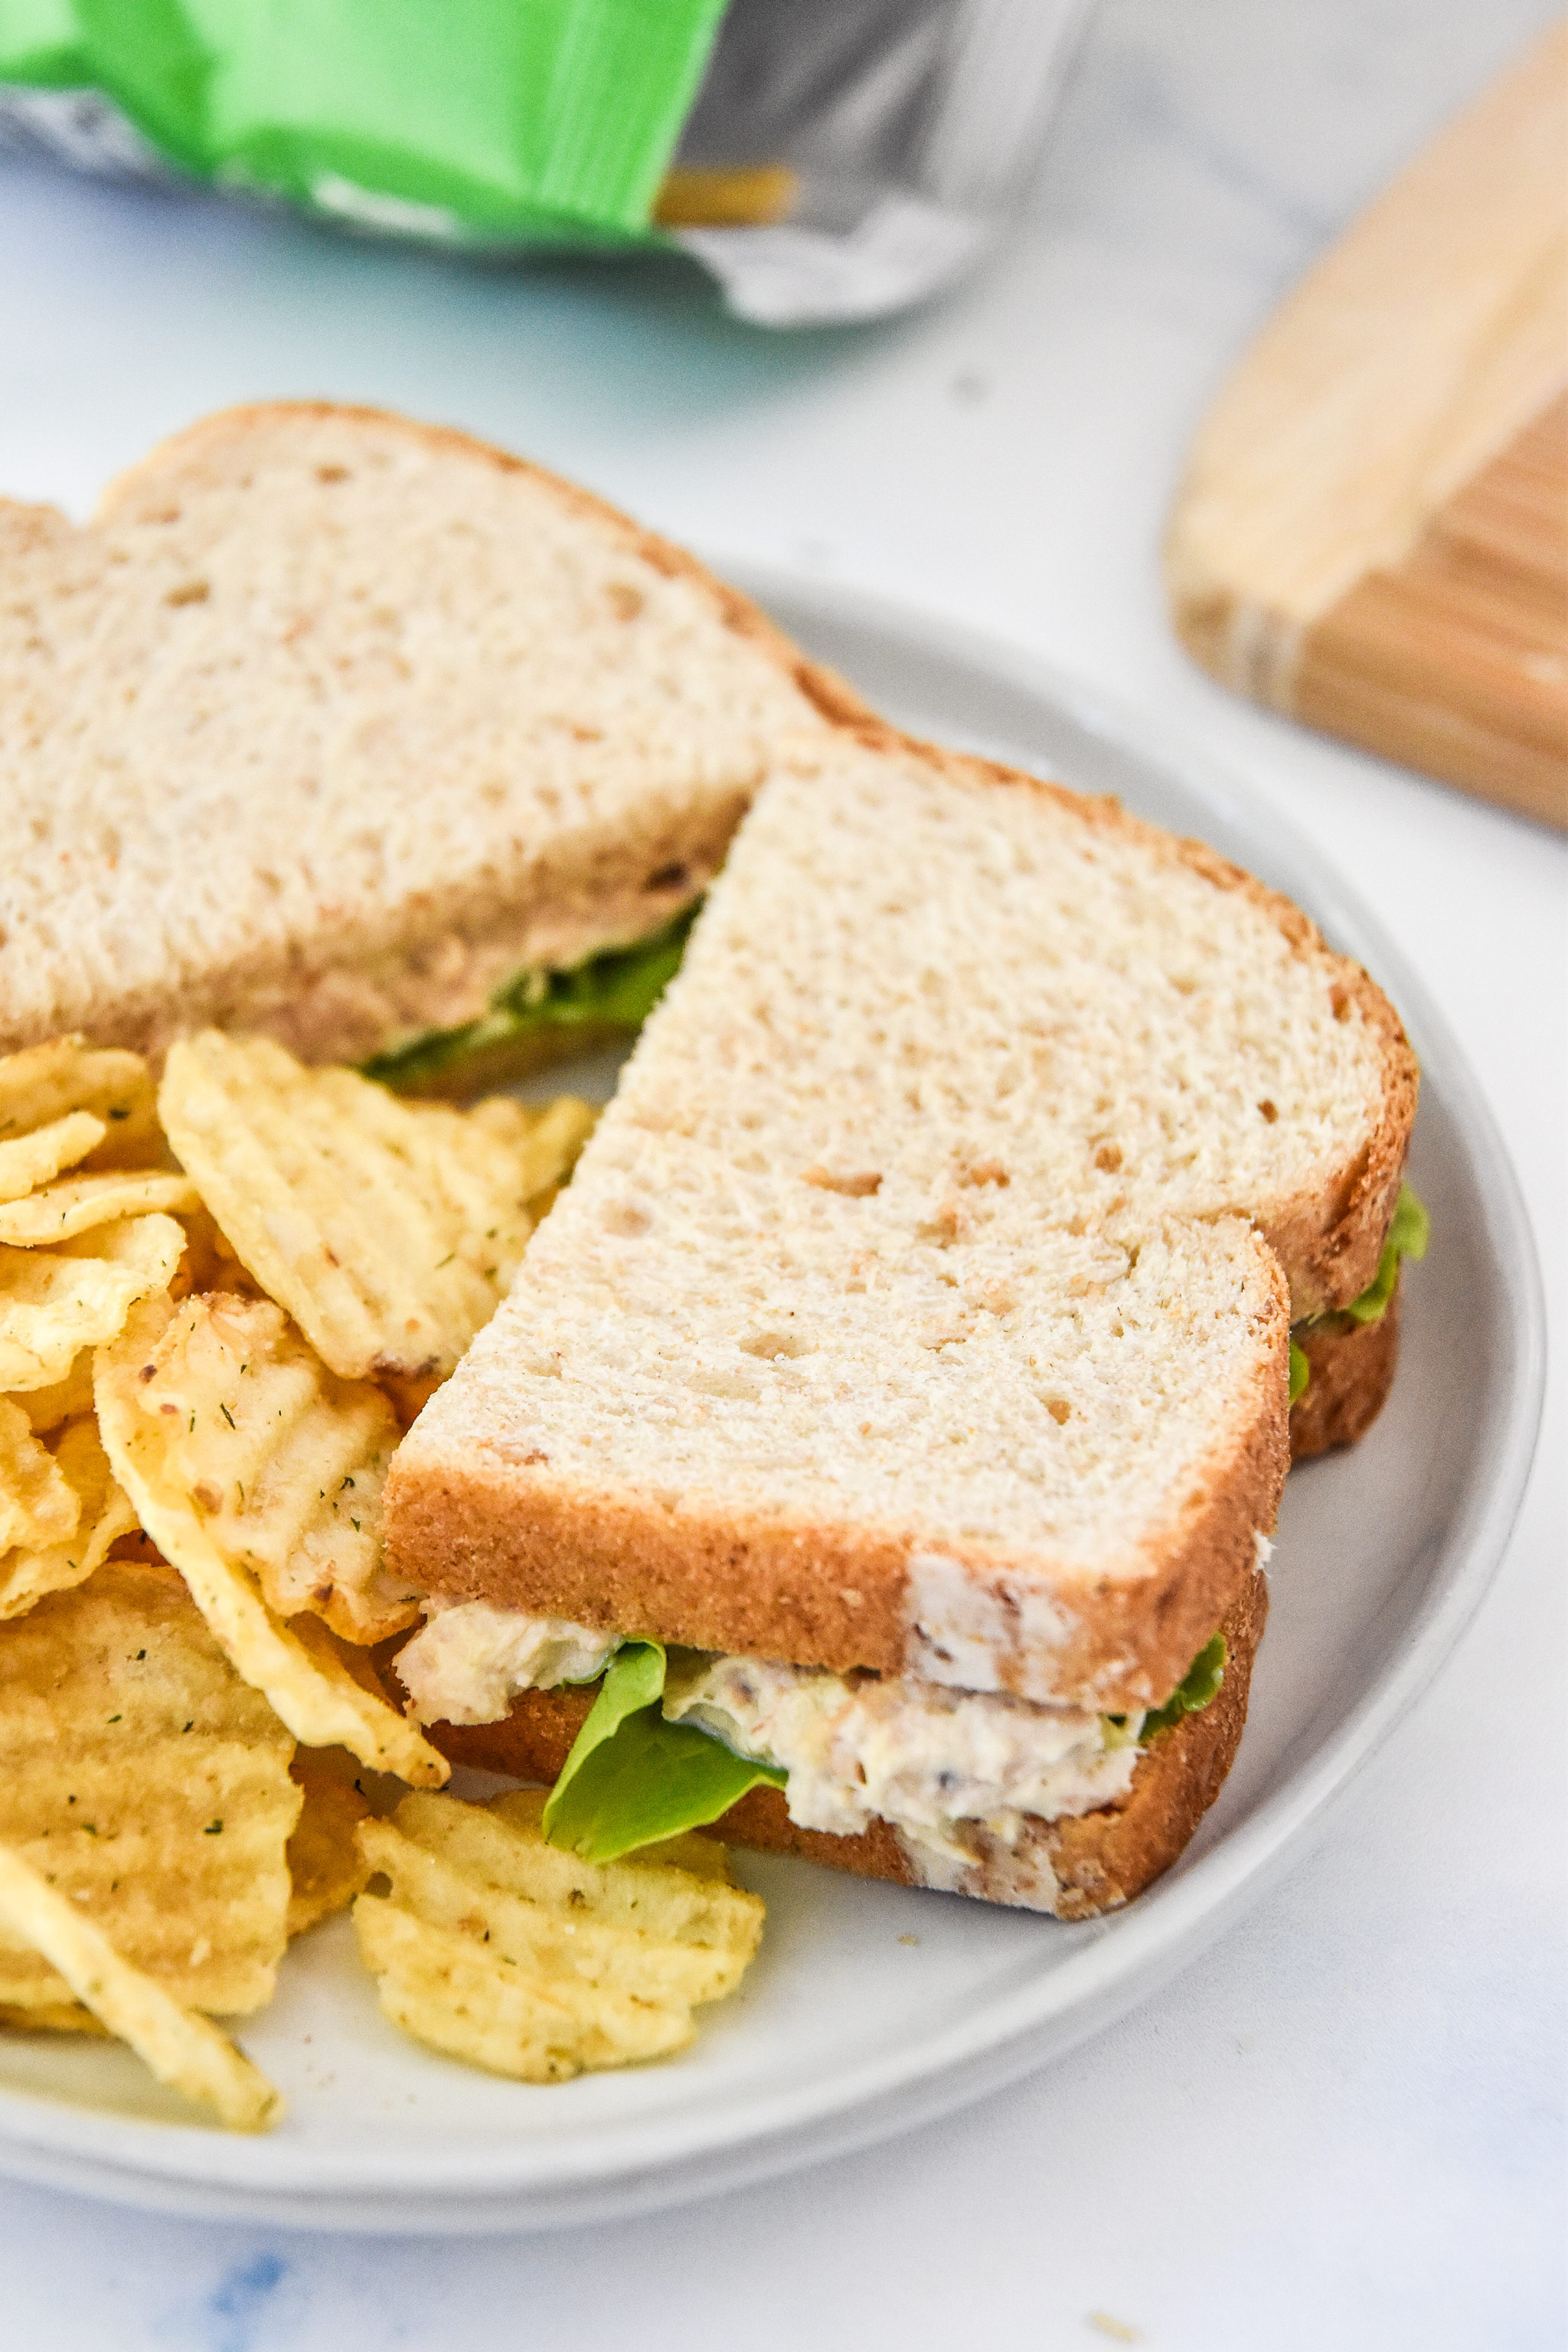 tuna salad sandwich with chips on a plate.